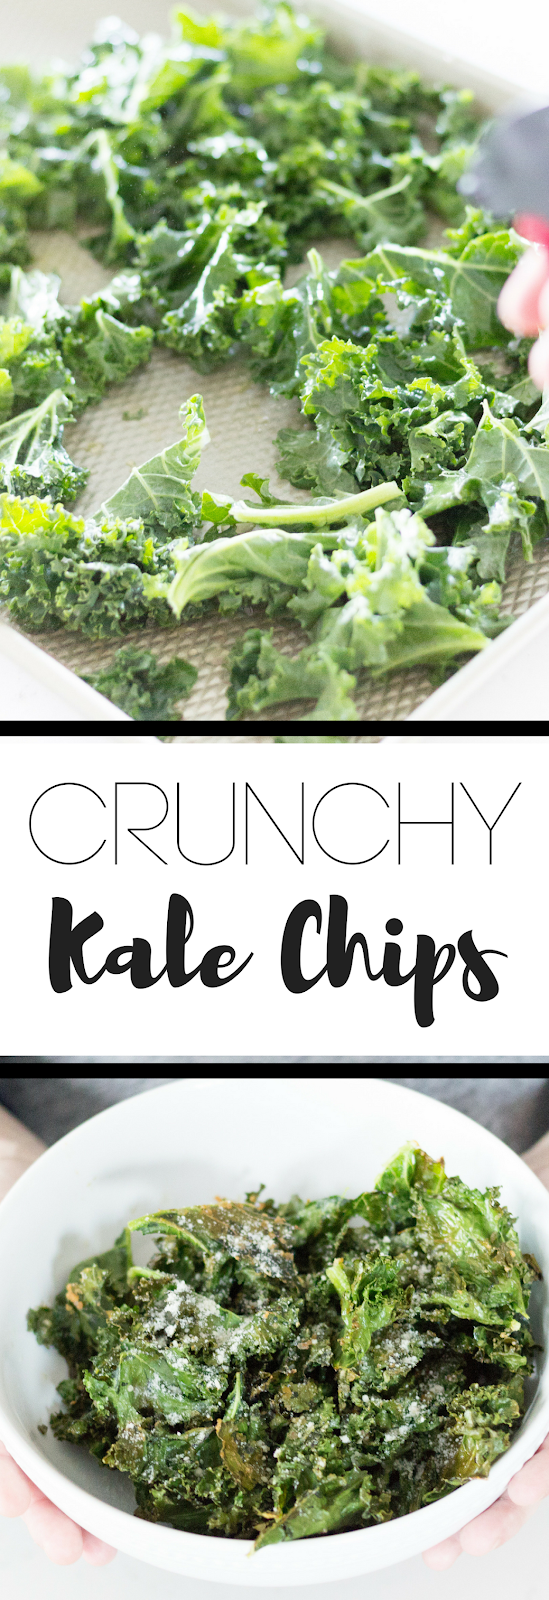 Here's the recipe you are looking for! The most perfectly easy kale chips. These oven baked kale chips are so versatile and are ready to go in 15 minutes!   kale chips, homemade chips, healthy chips, diet chips, healthy eating, flavor of life olive oil, extra virgin olive oil recipe, parmesan chips, salt and vinegar chips